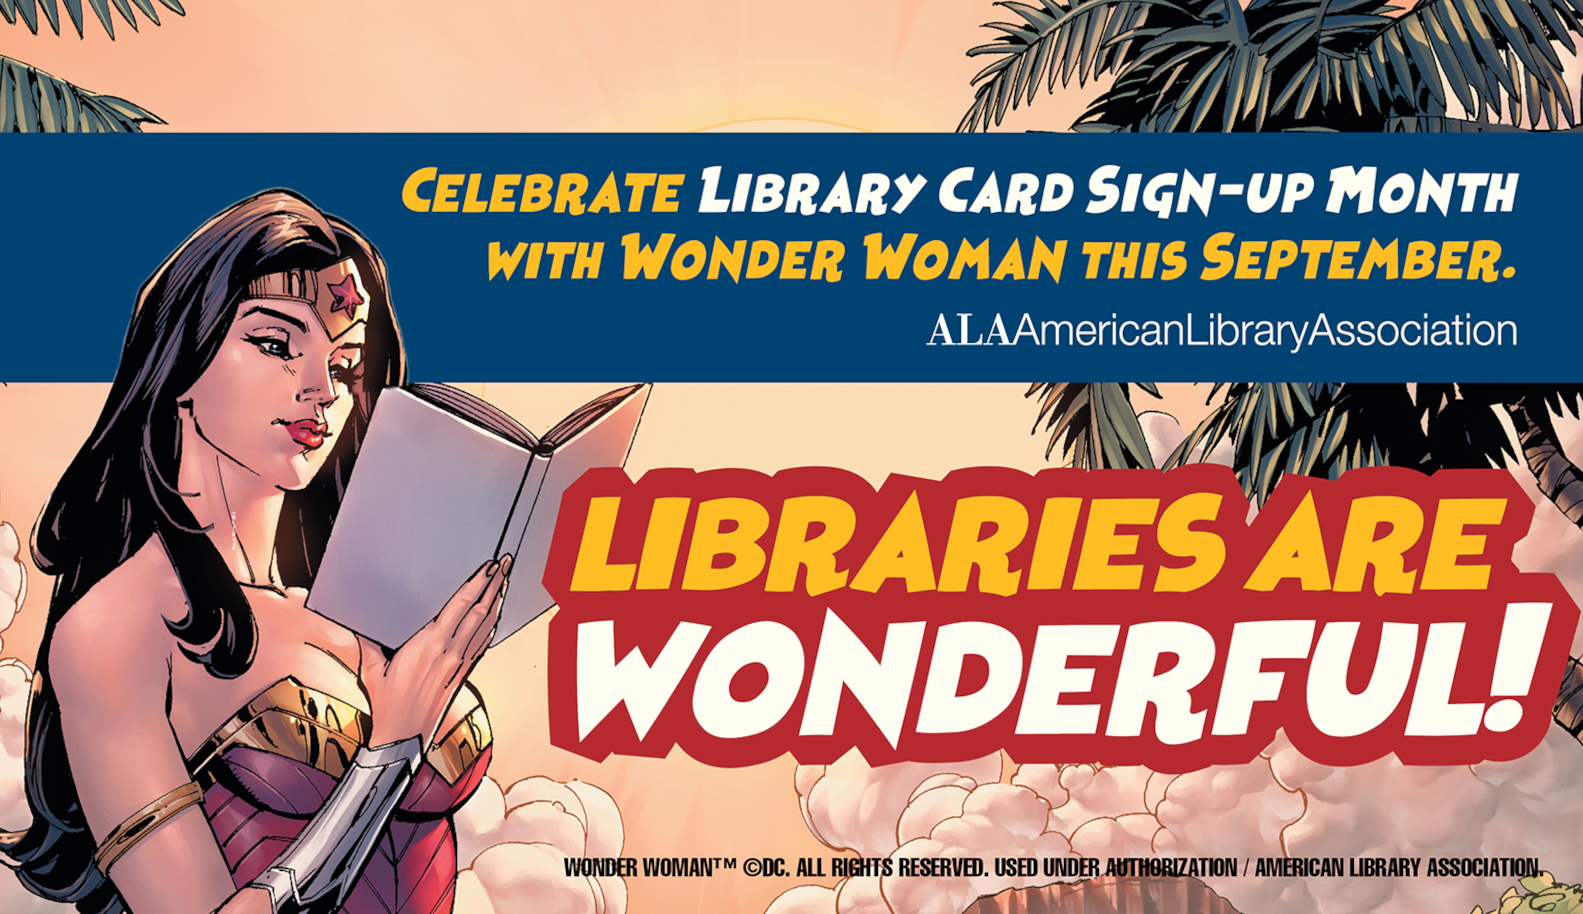 Library Card Sign-Up Month 2020